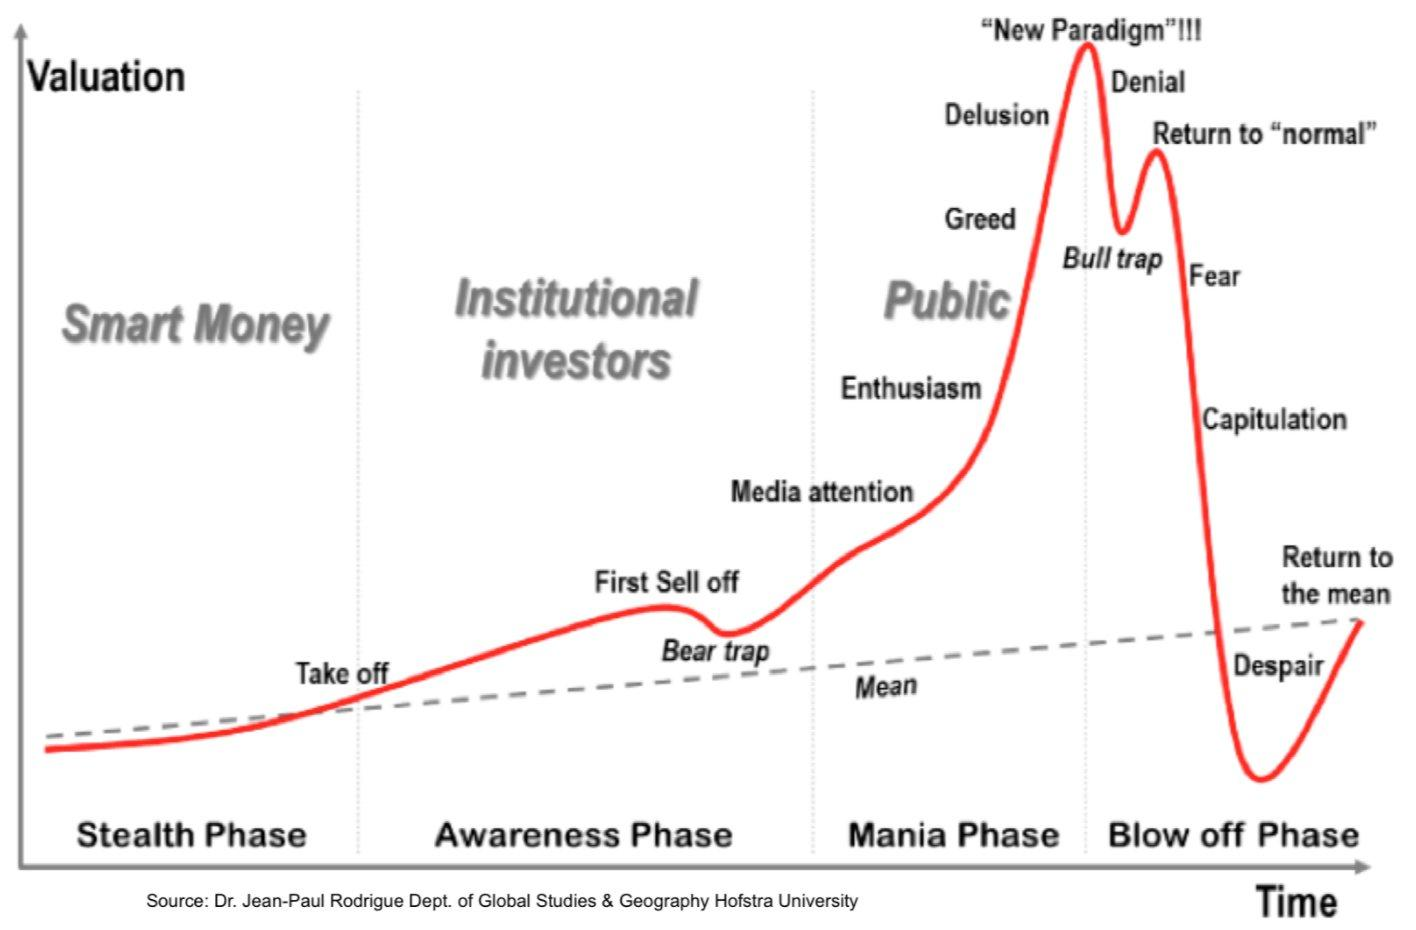 6 Reasons To 'Buy' This Bull Market... Or Not